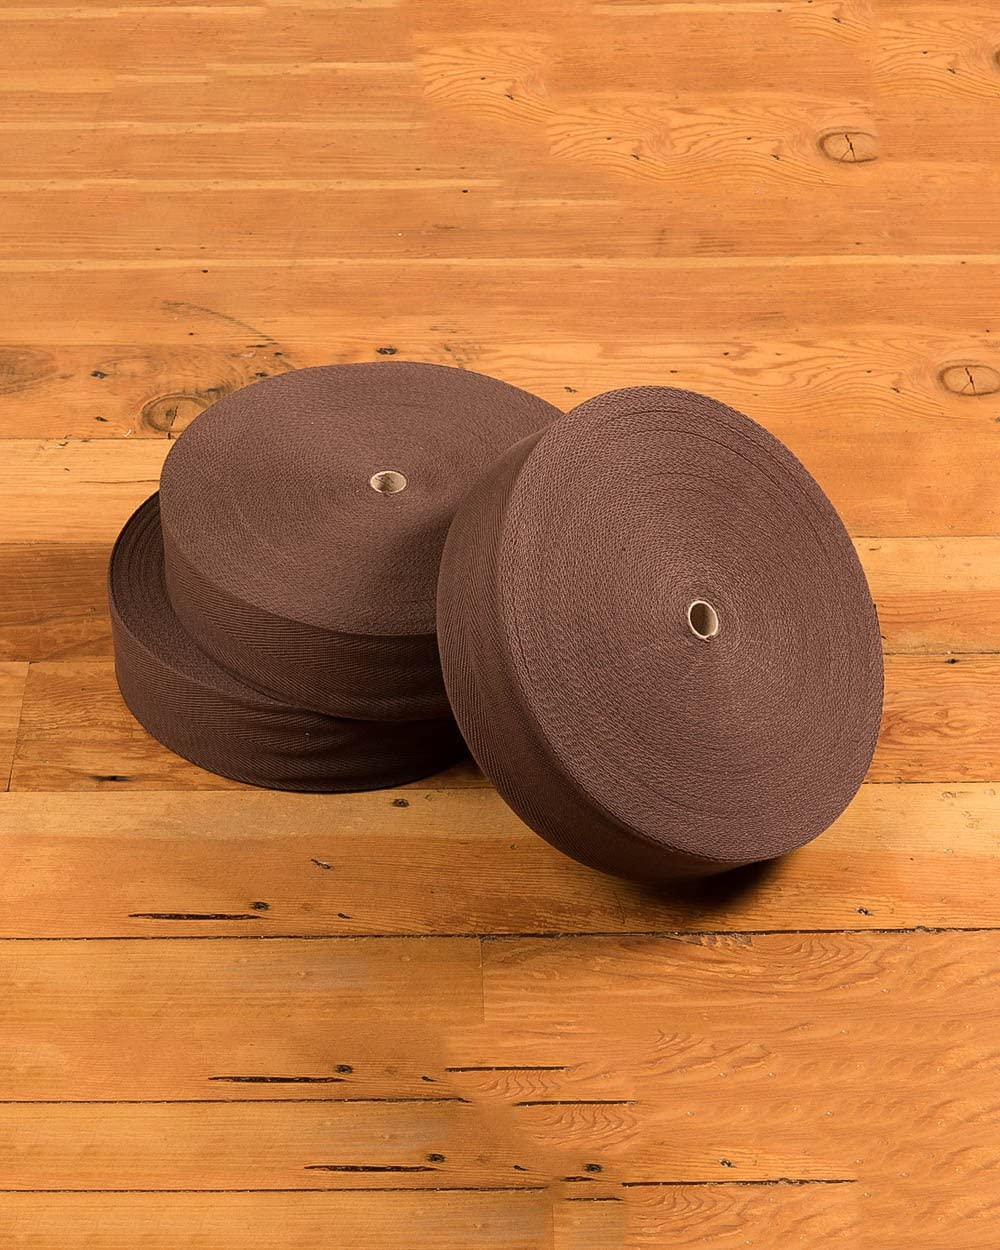 Natural Area Rugs High End Cotton Binding Carpet Tape for Rug Carpets, 100 Percent Cotton, Durable, 2 3 4 x 164 Espresso